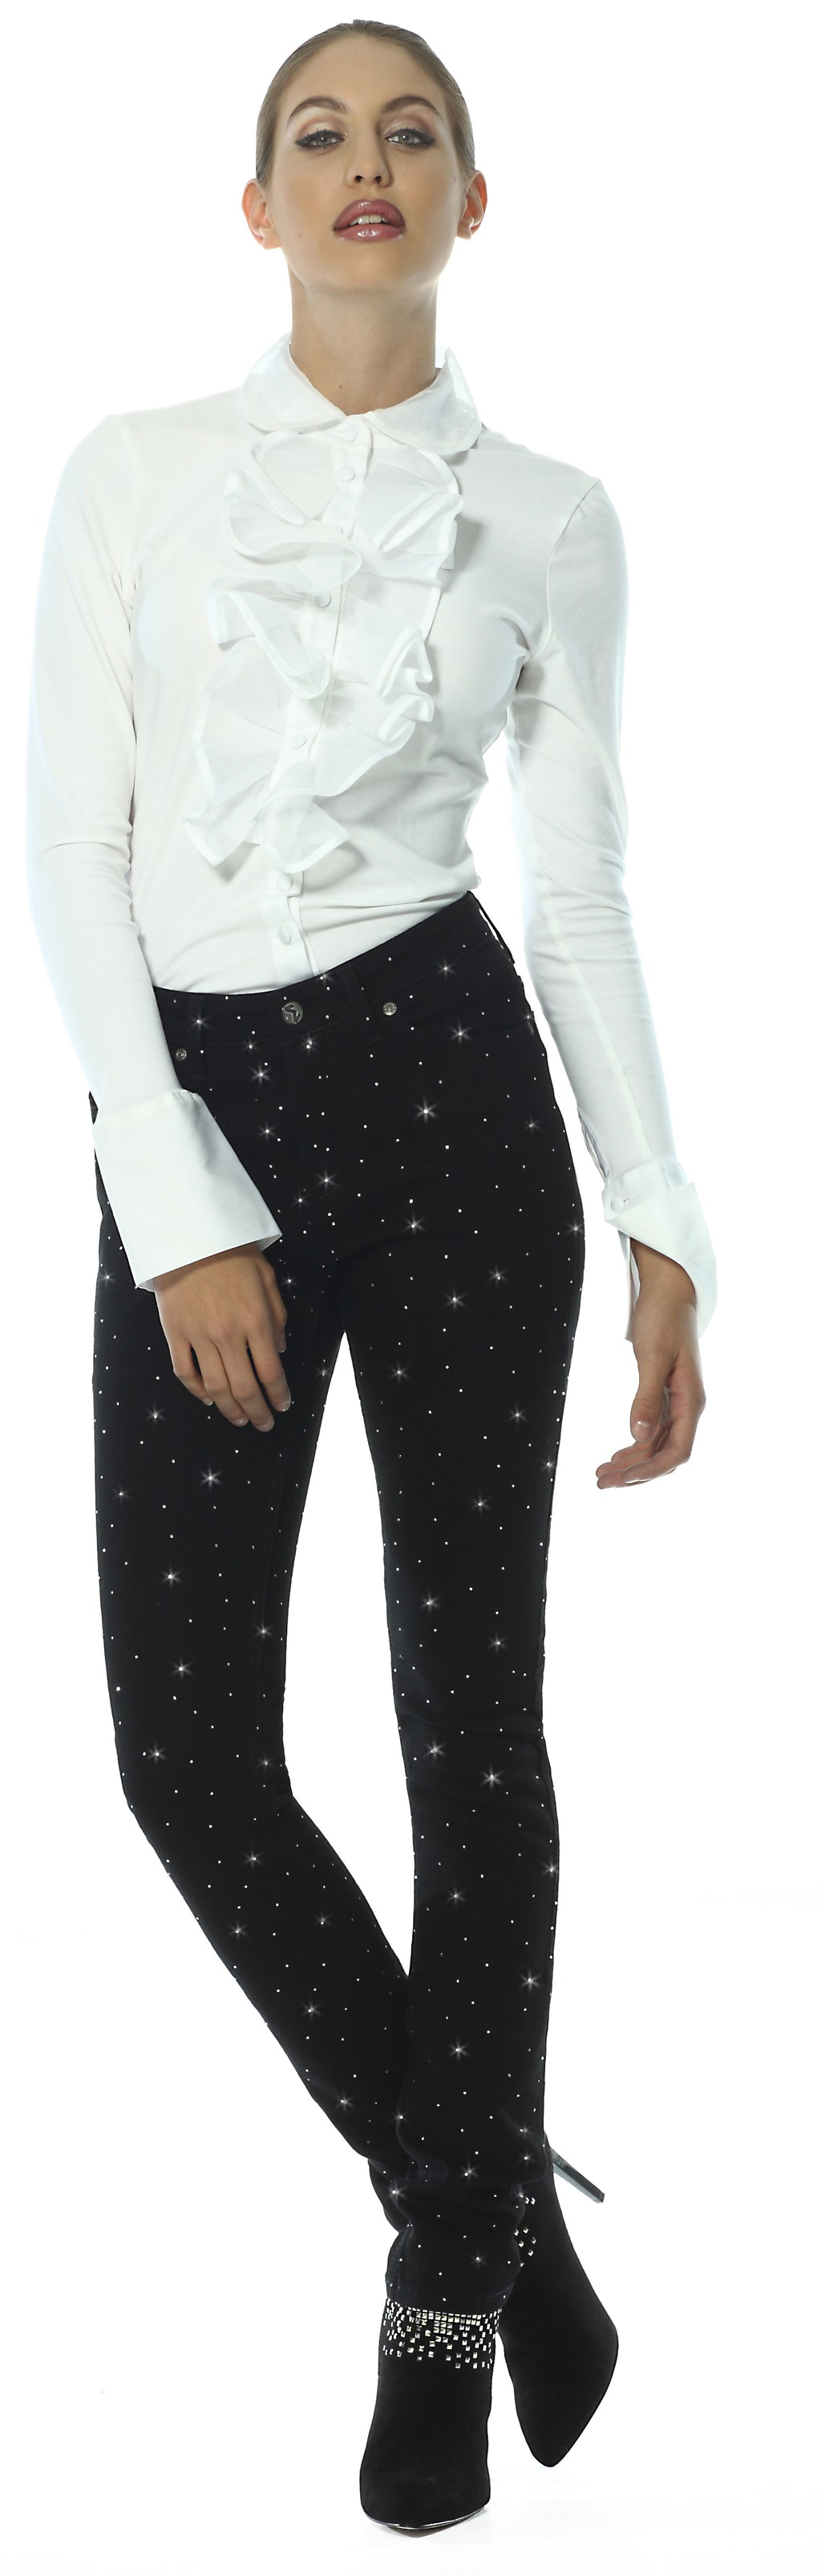 Black Diamanté Skinny Party Jeans in Jet Black - Gina Jet Black Diamante